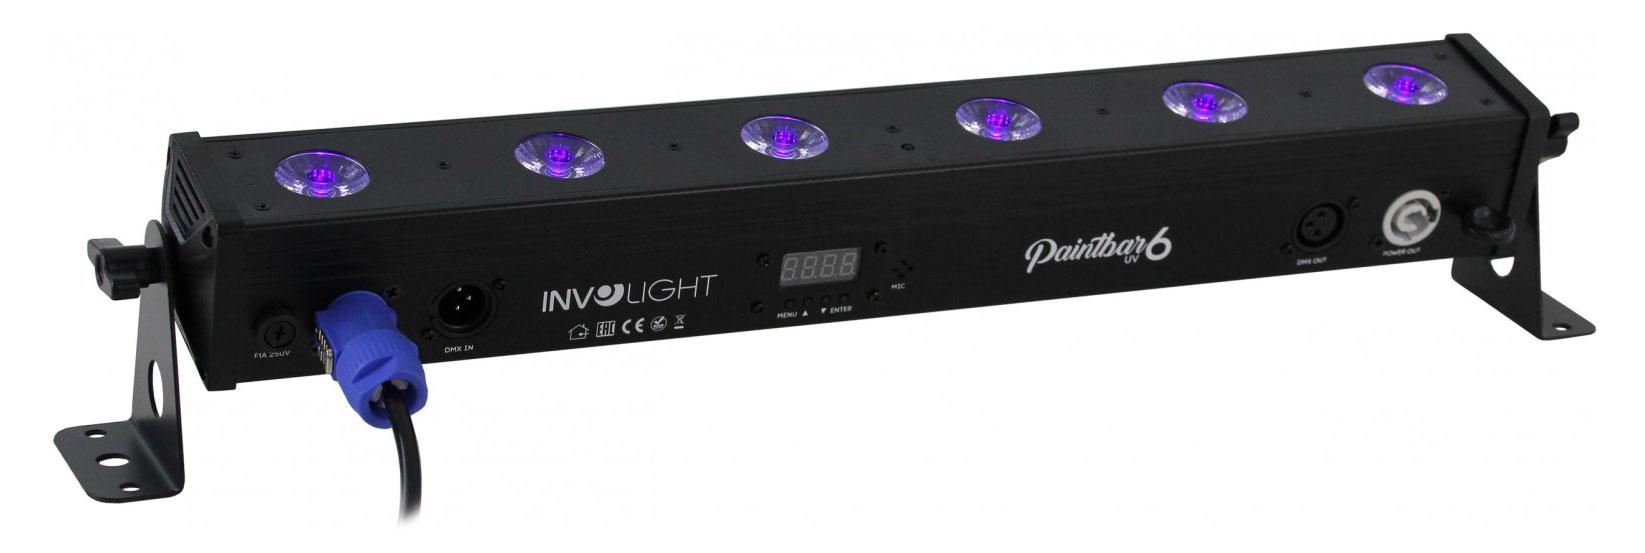 Involight PaintBAR UV6